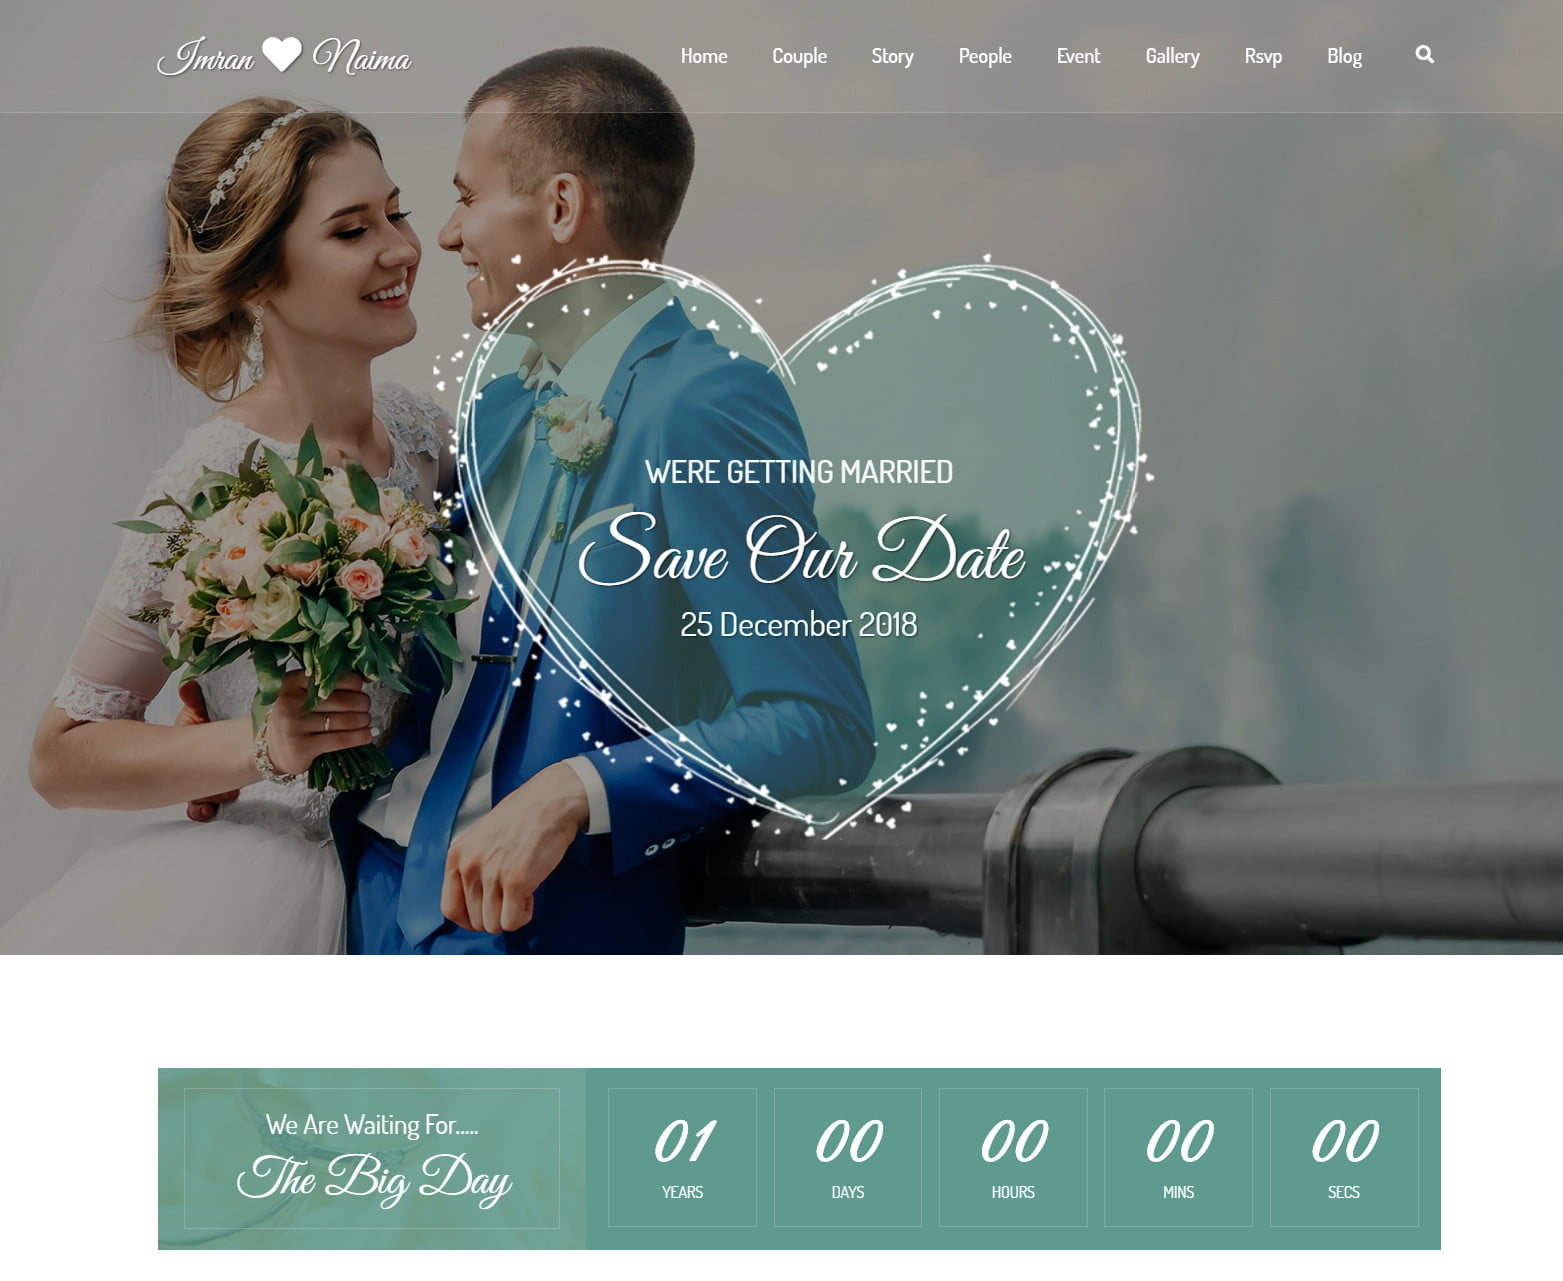 Next Level Wedding Invitation - Create Your Own Website 7